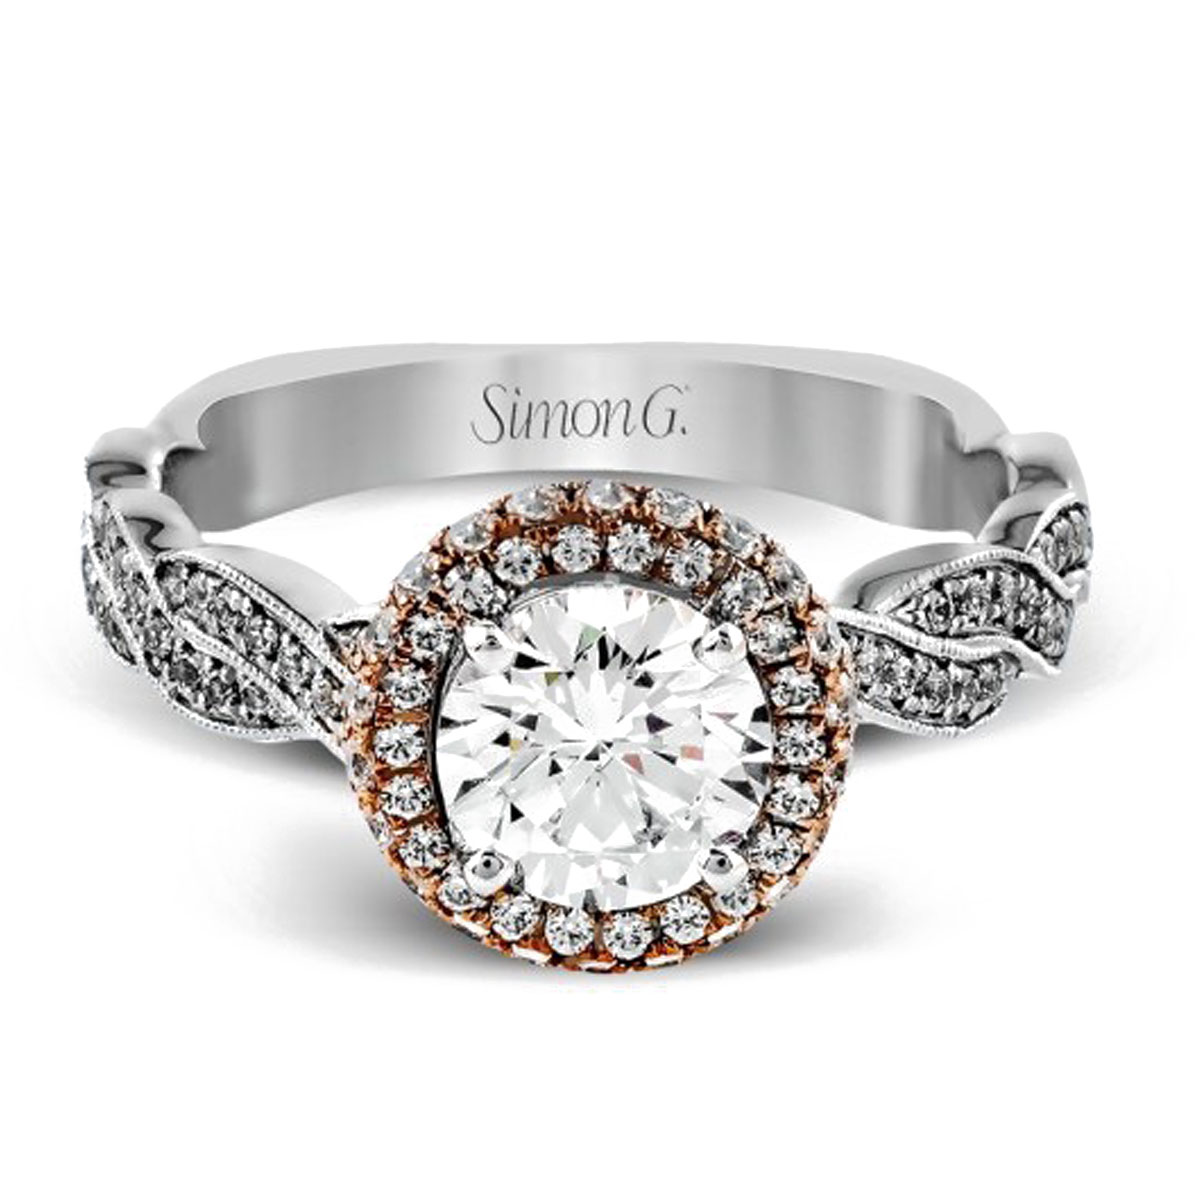 simon g engagement rings white gold 18k engagement ring